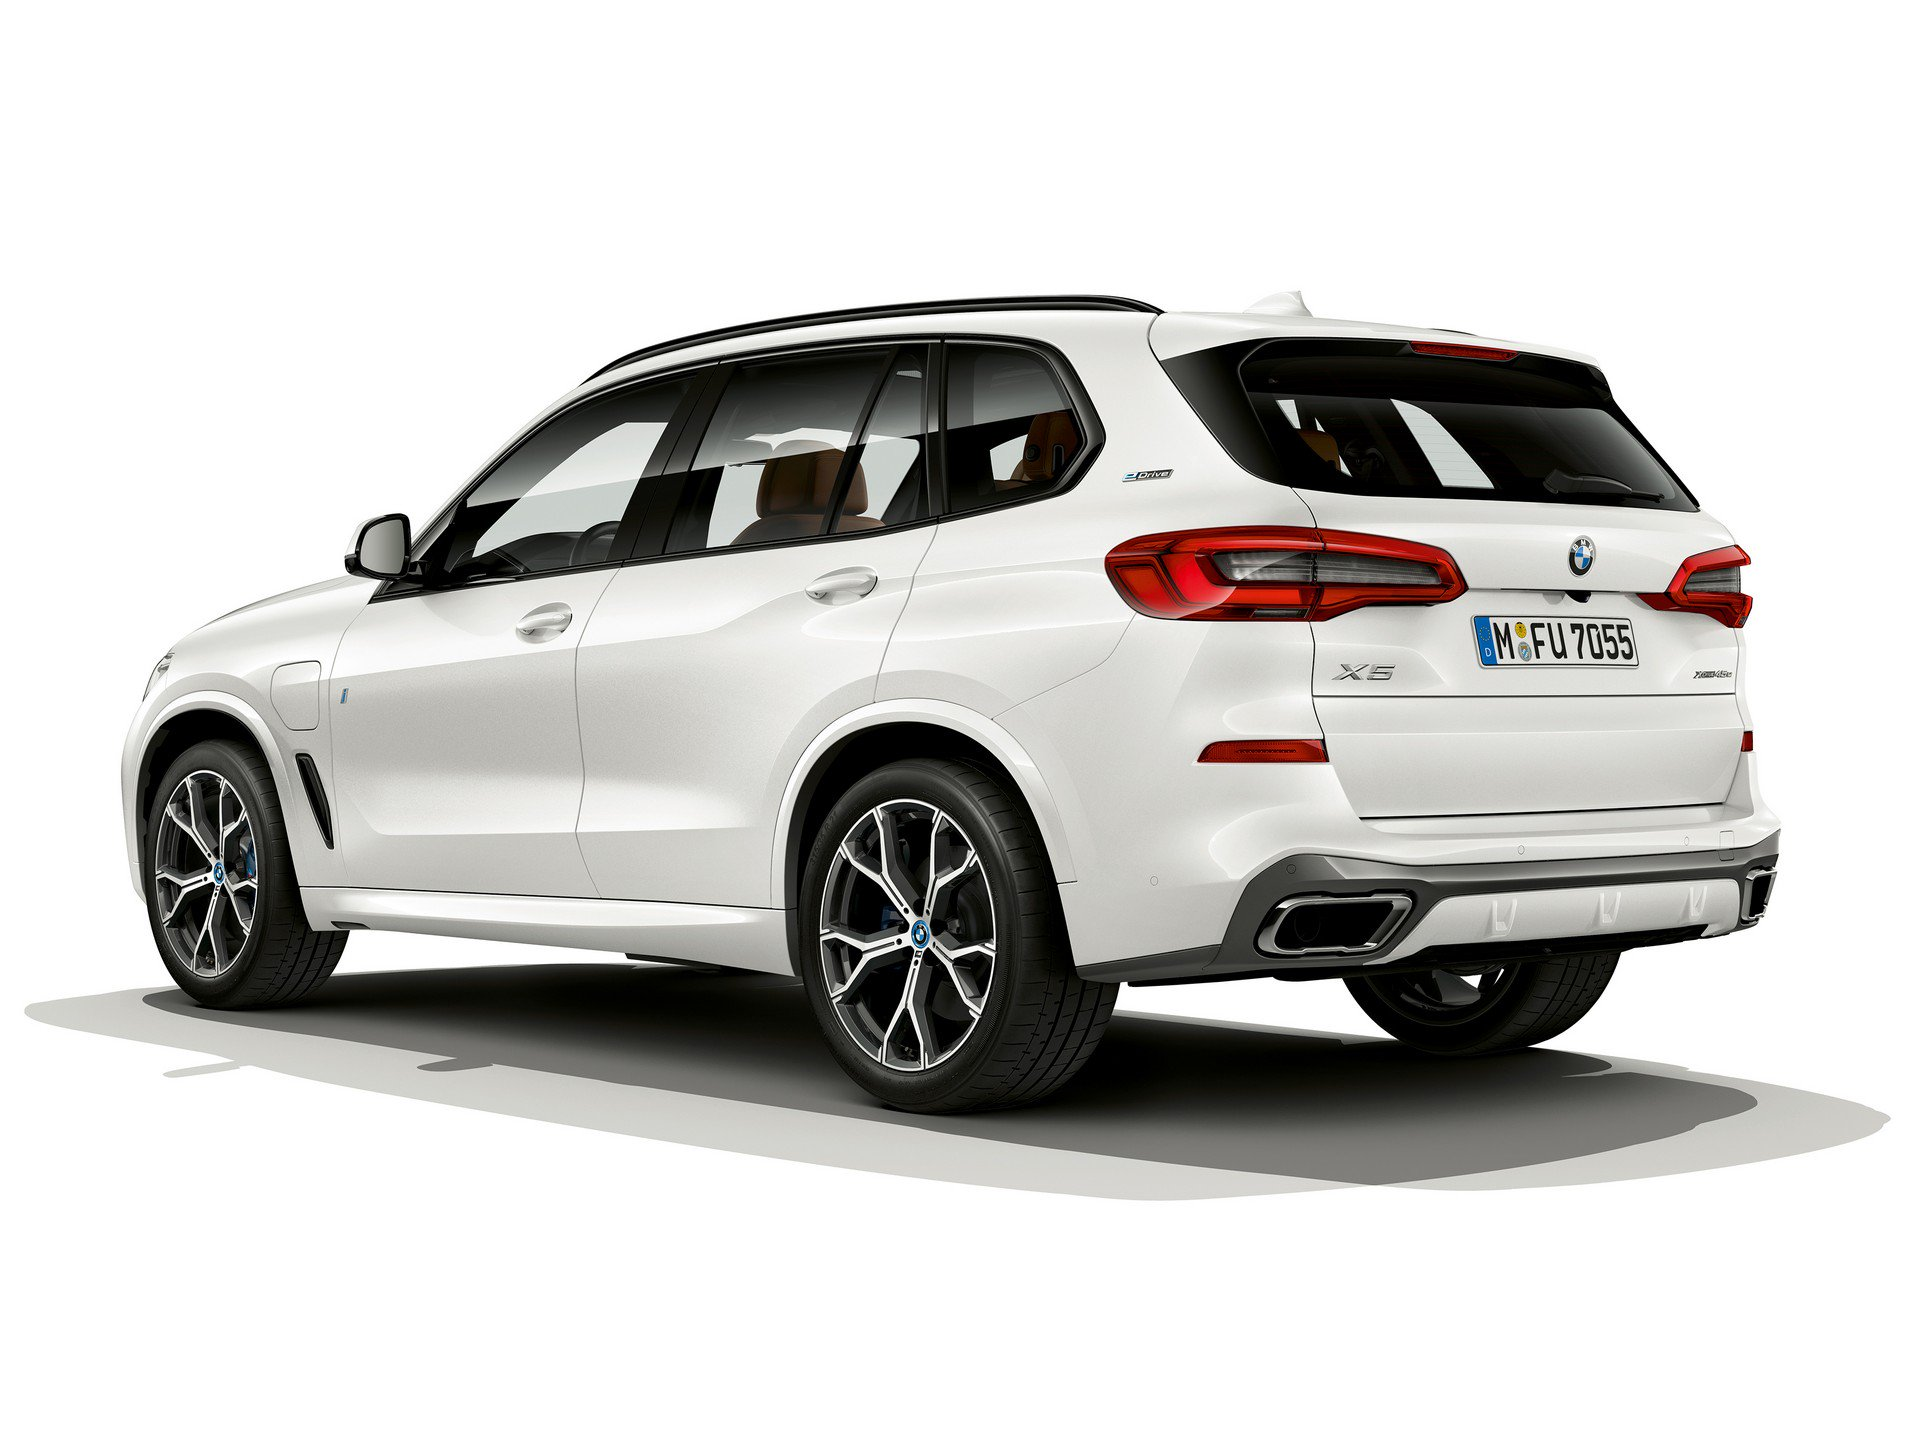 8d40e1f0-bmw-x5-xdrive45e-iperformance-3.jpg